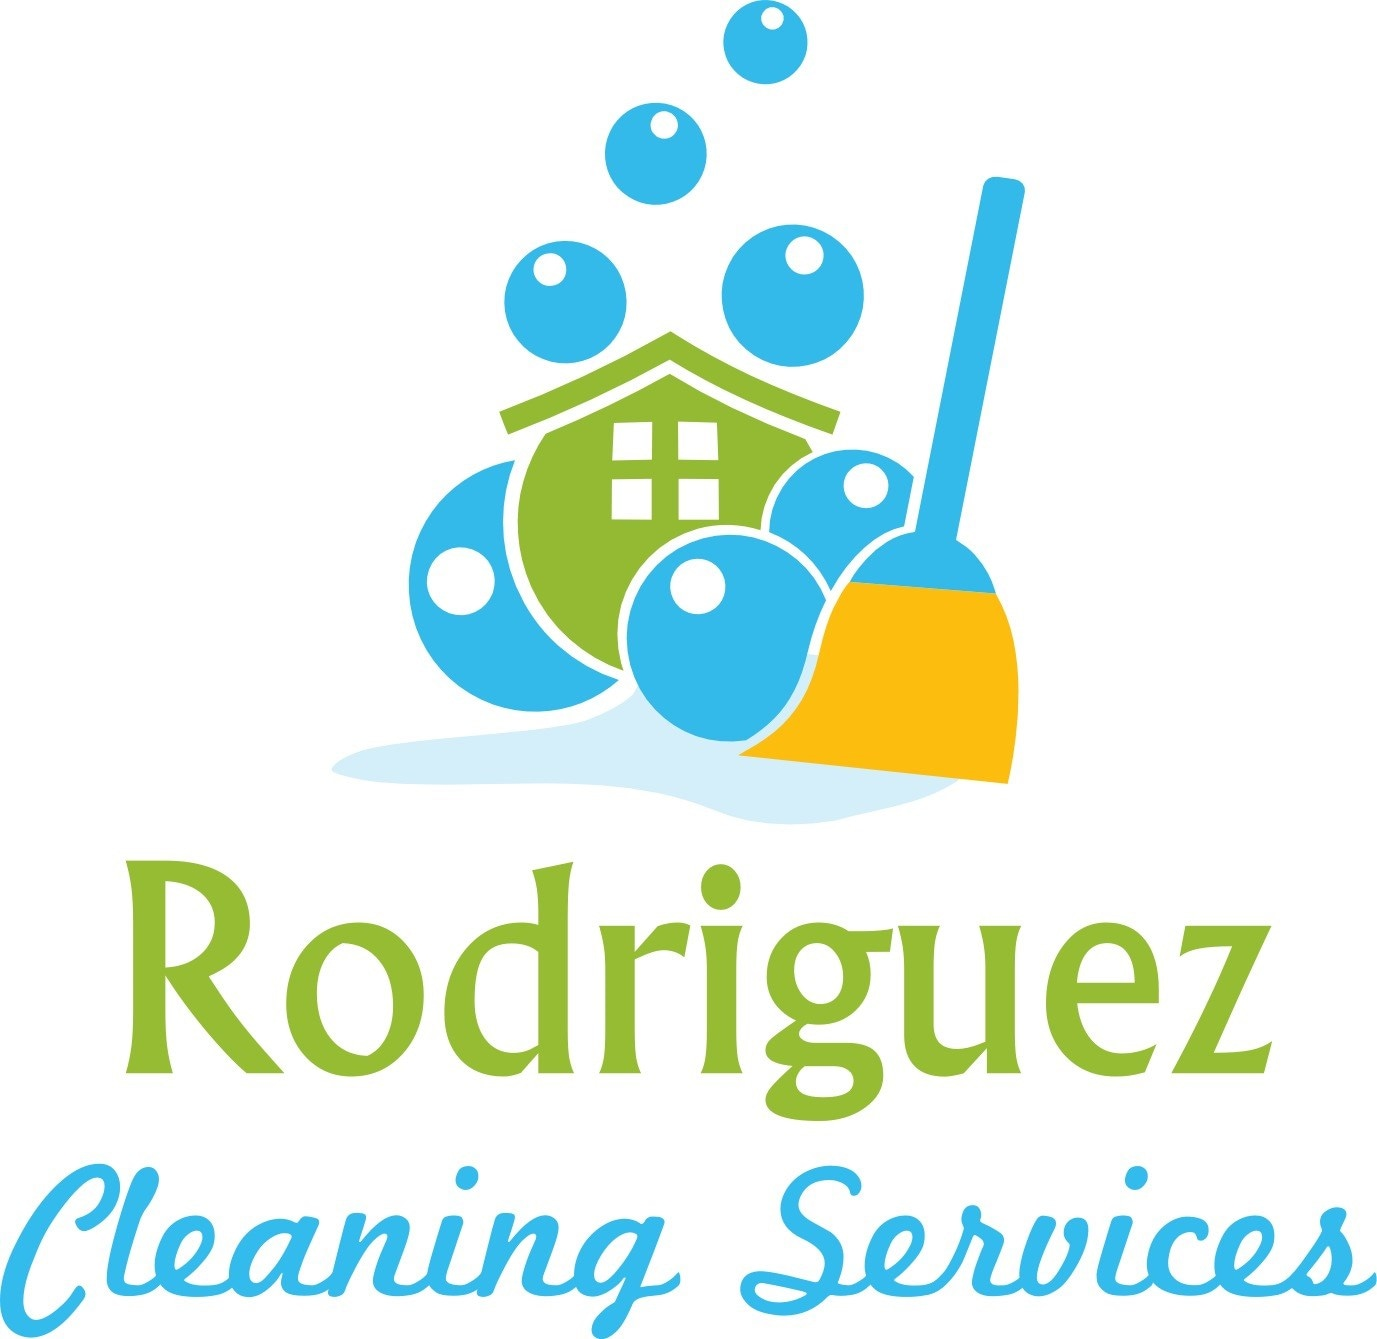 Rodriguez Cleaning Services